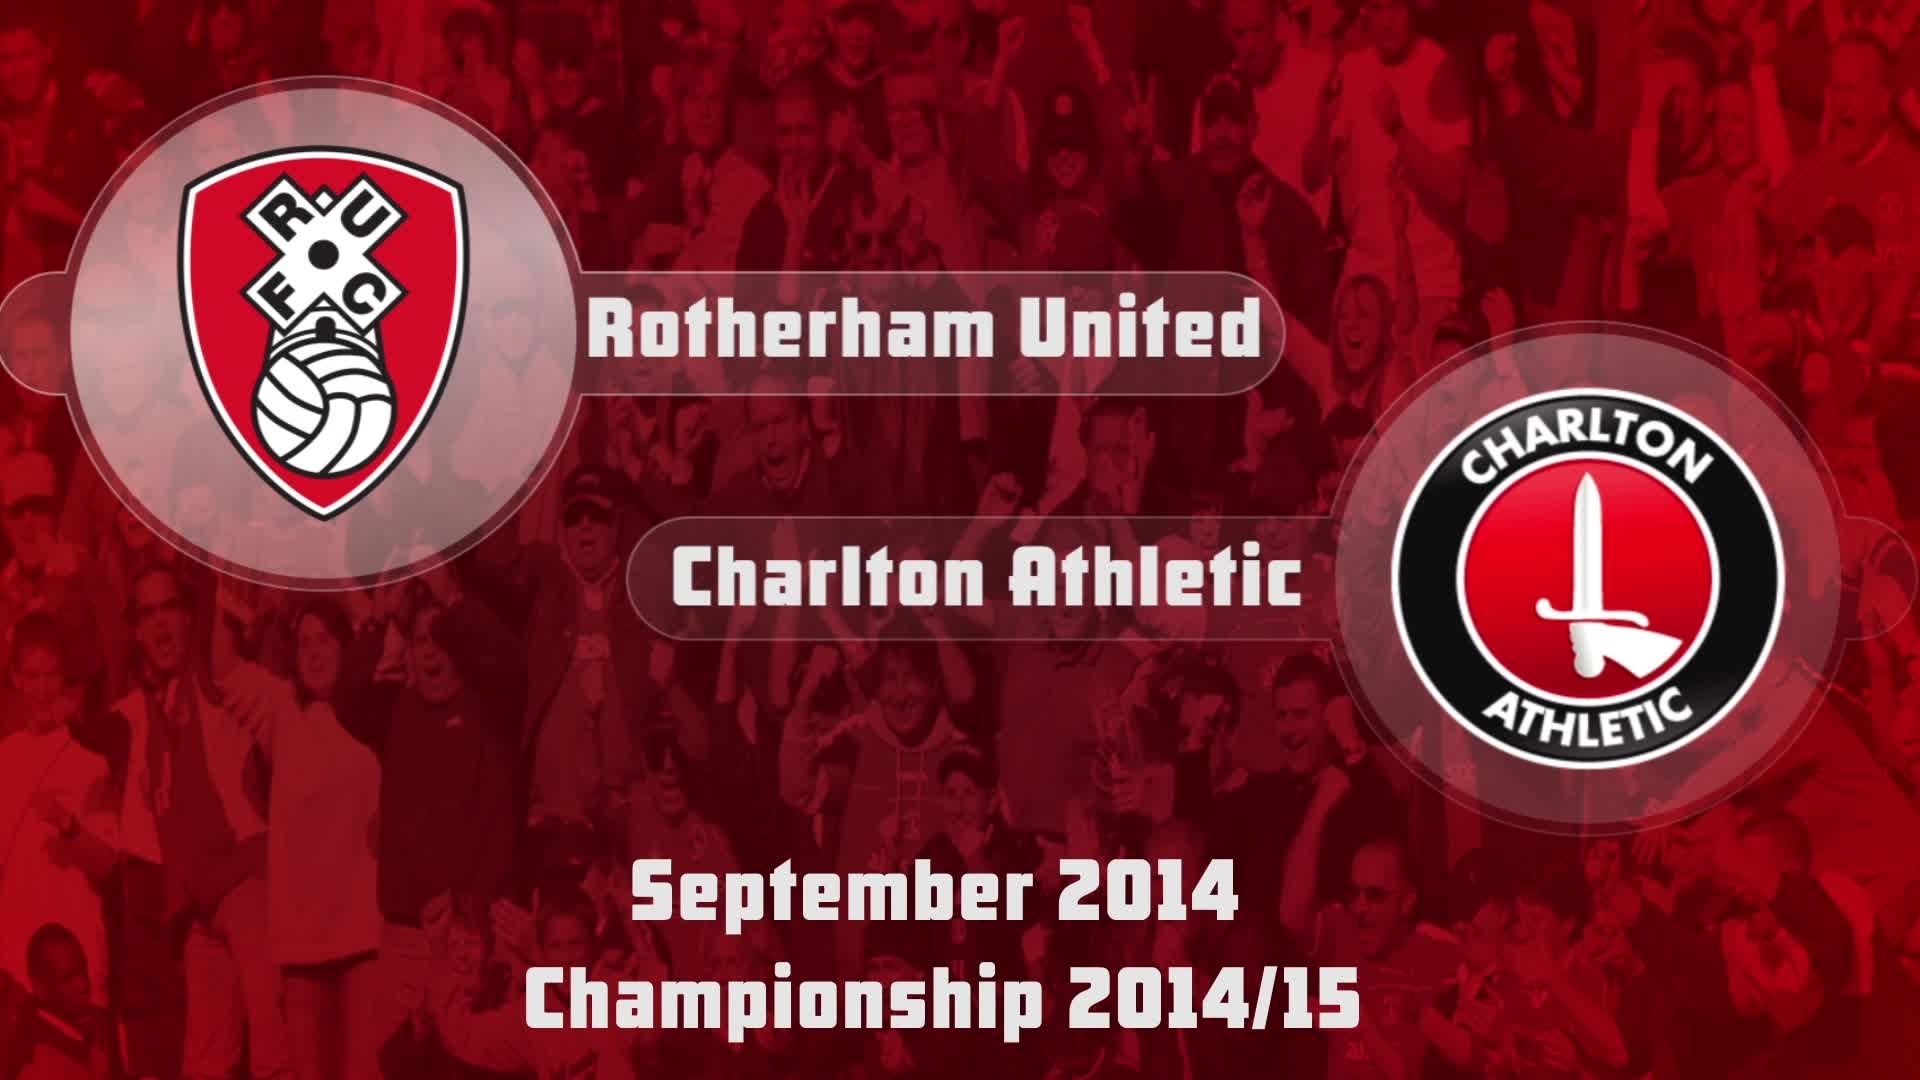 10 HIGHLIGHTS | Rotherham 1 Charlton 1 (Sept 2014)